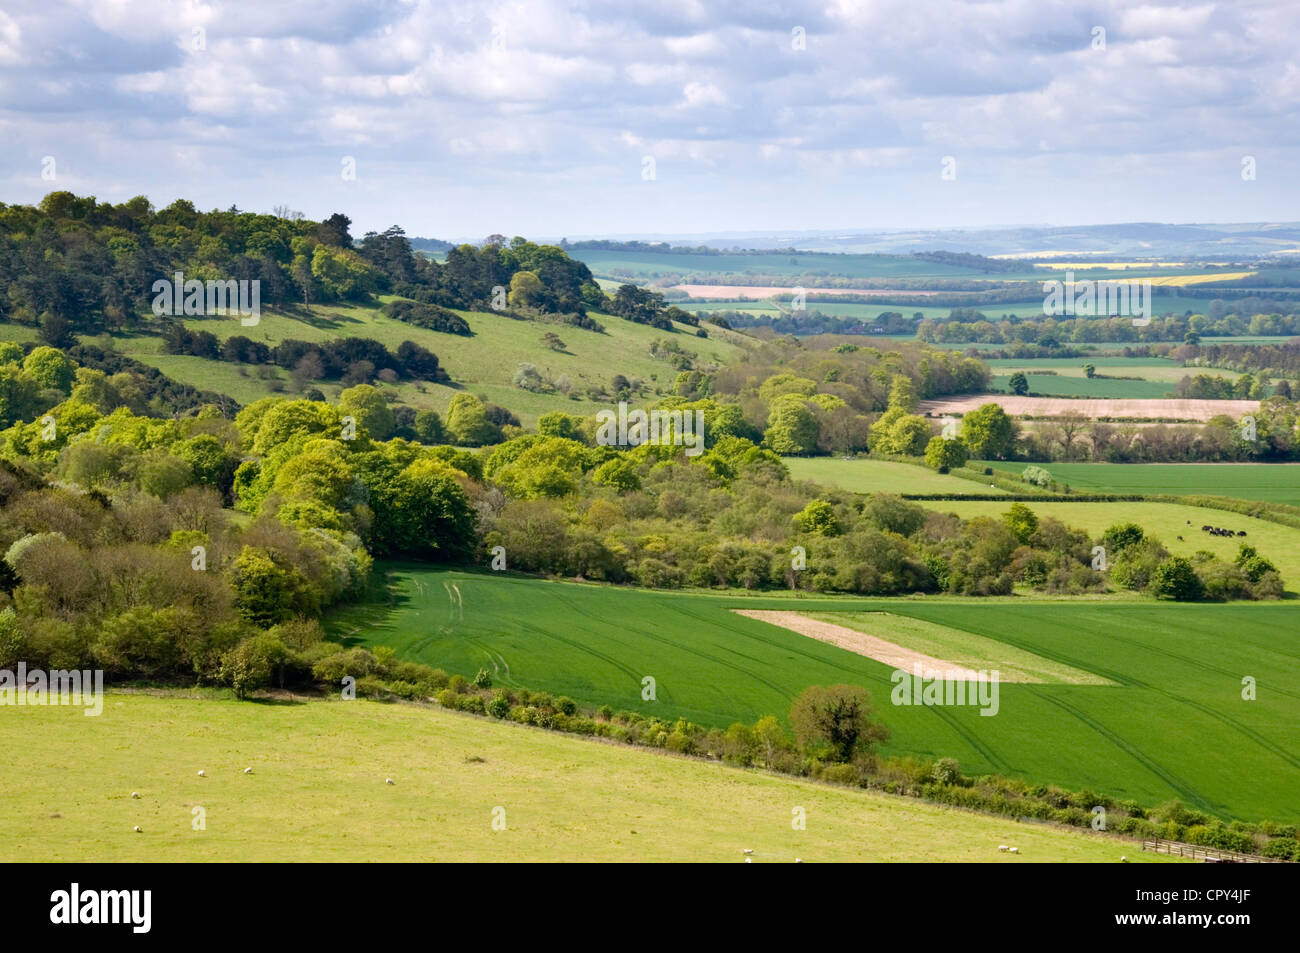 Oxon - Chiltern Hills - landscape nr Lewknor - woodlands - green fields - blue haze of distance - sunlight and shadows - Stock Image